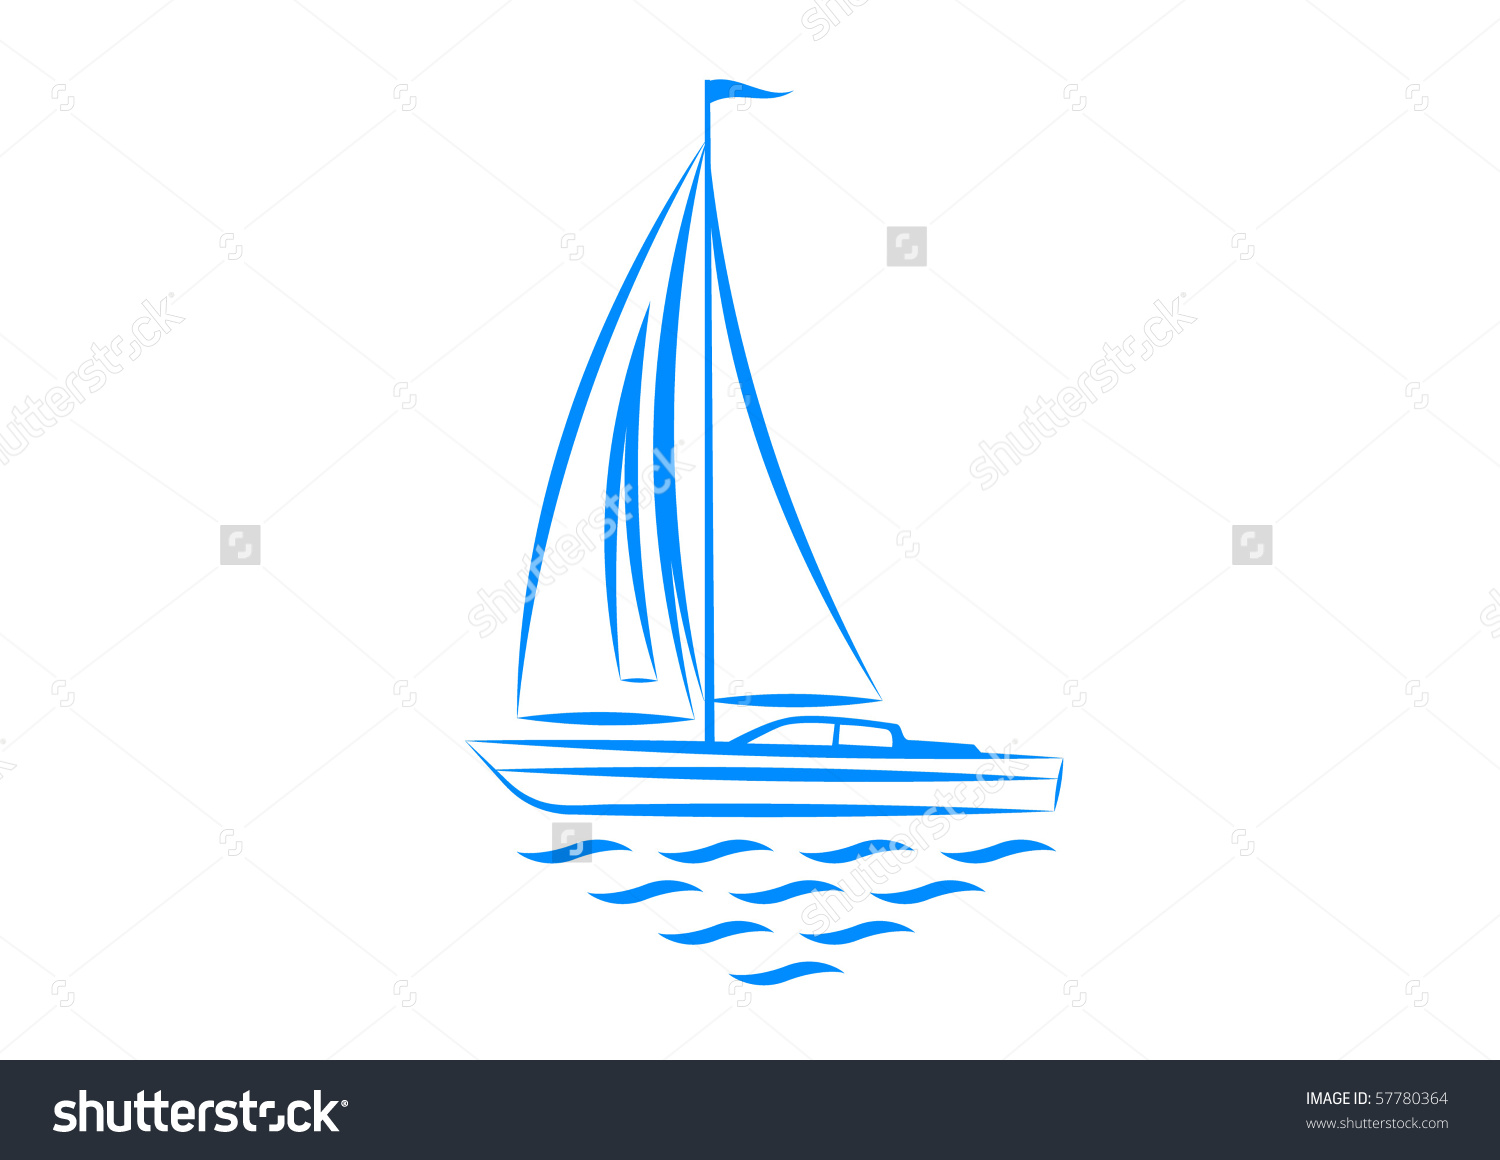 Clipart Sailboat Stock Vector 57780364.